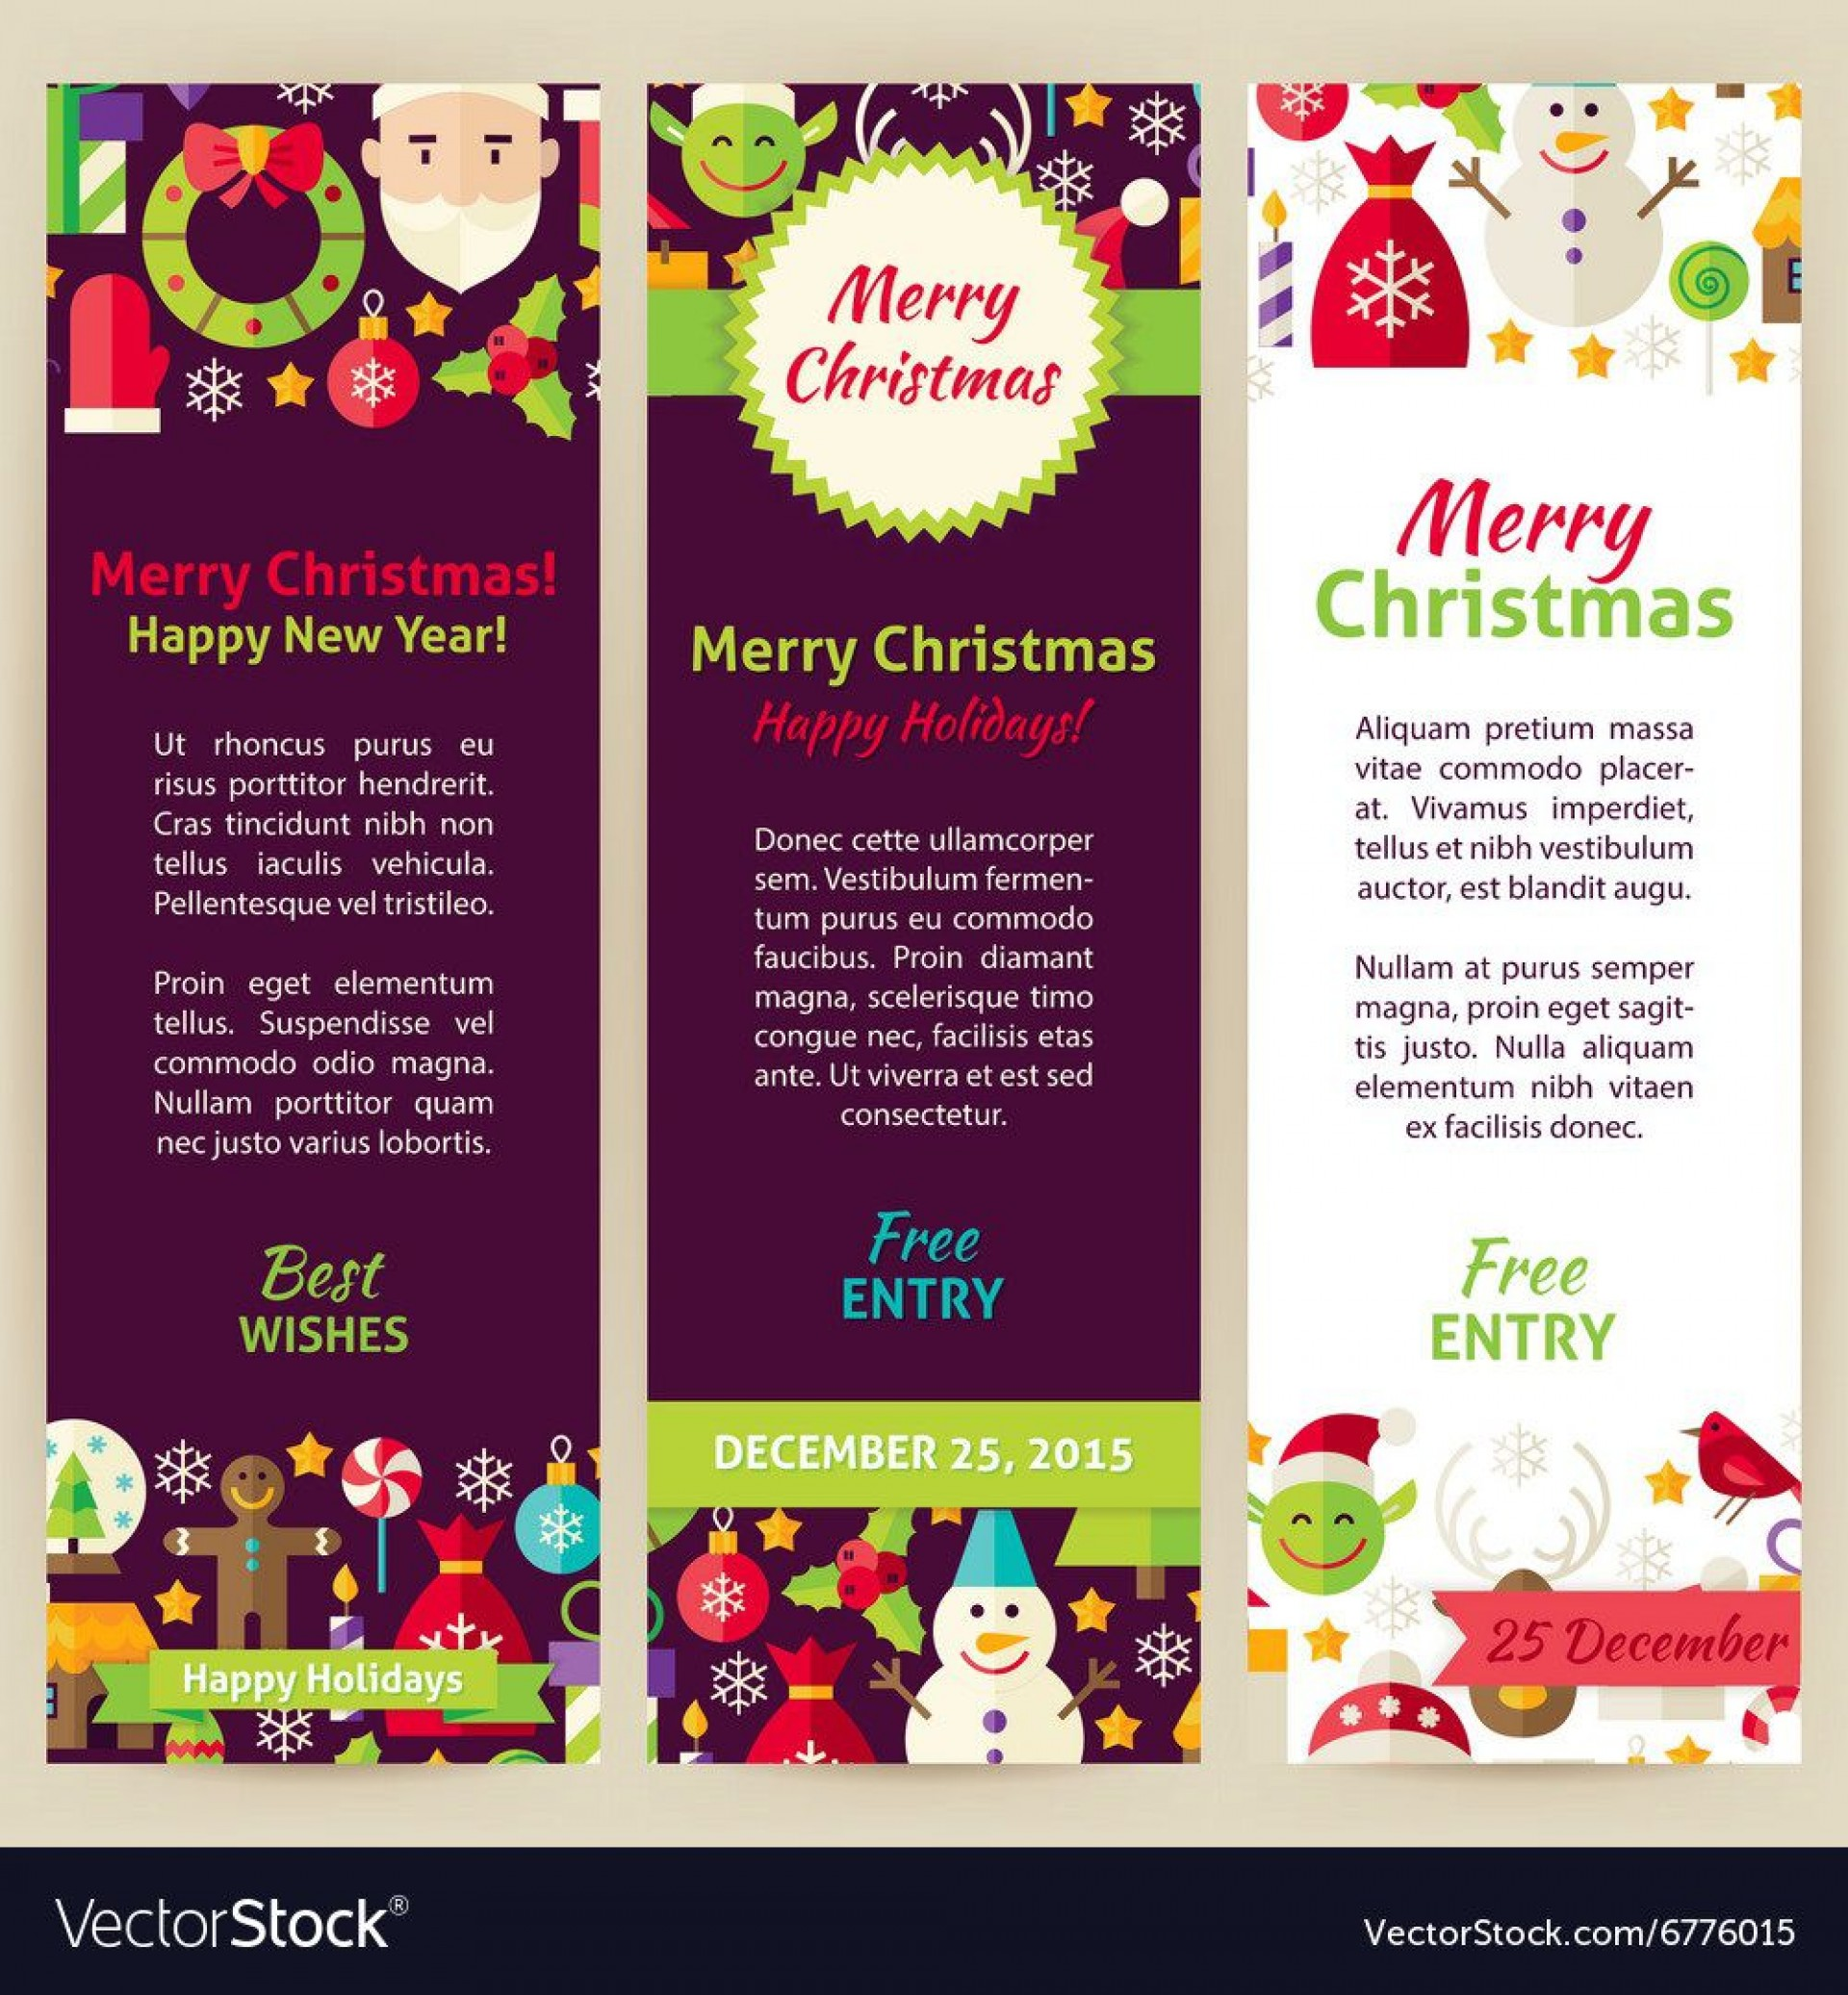 008 Unusual Christma Party Invitation Template Highest Quality  Funny Free Download Word Card1920